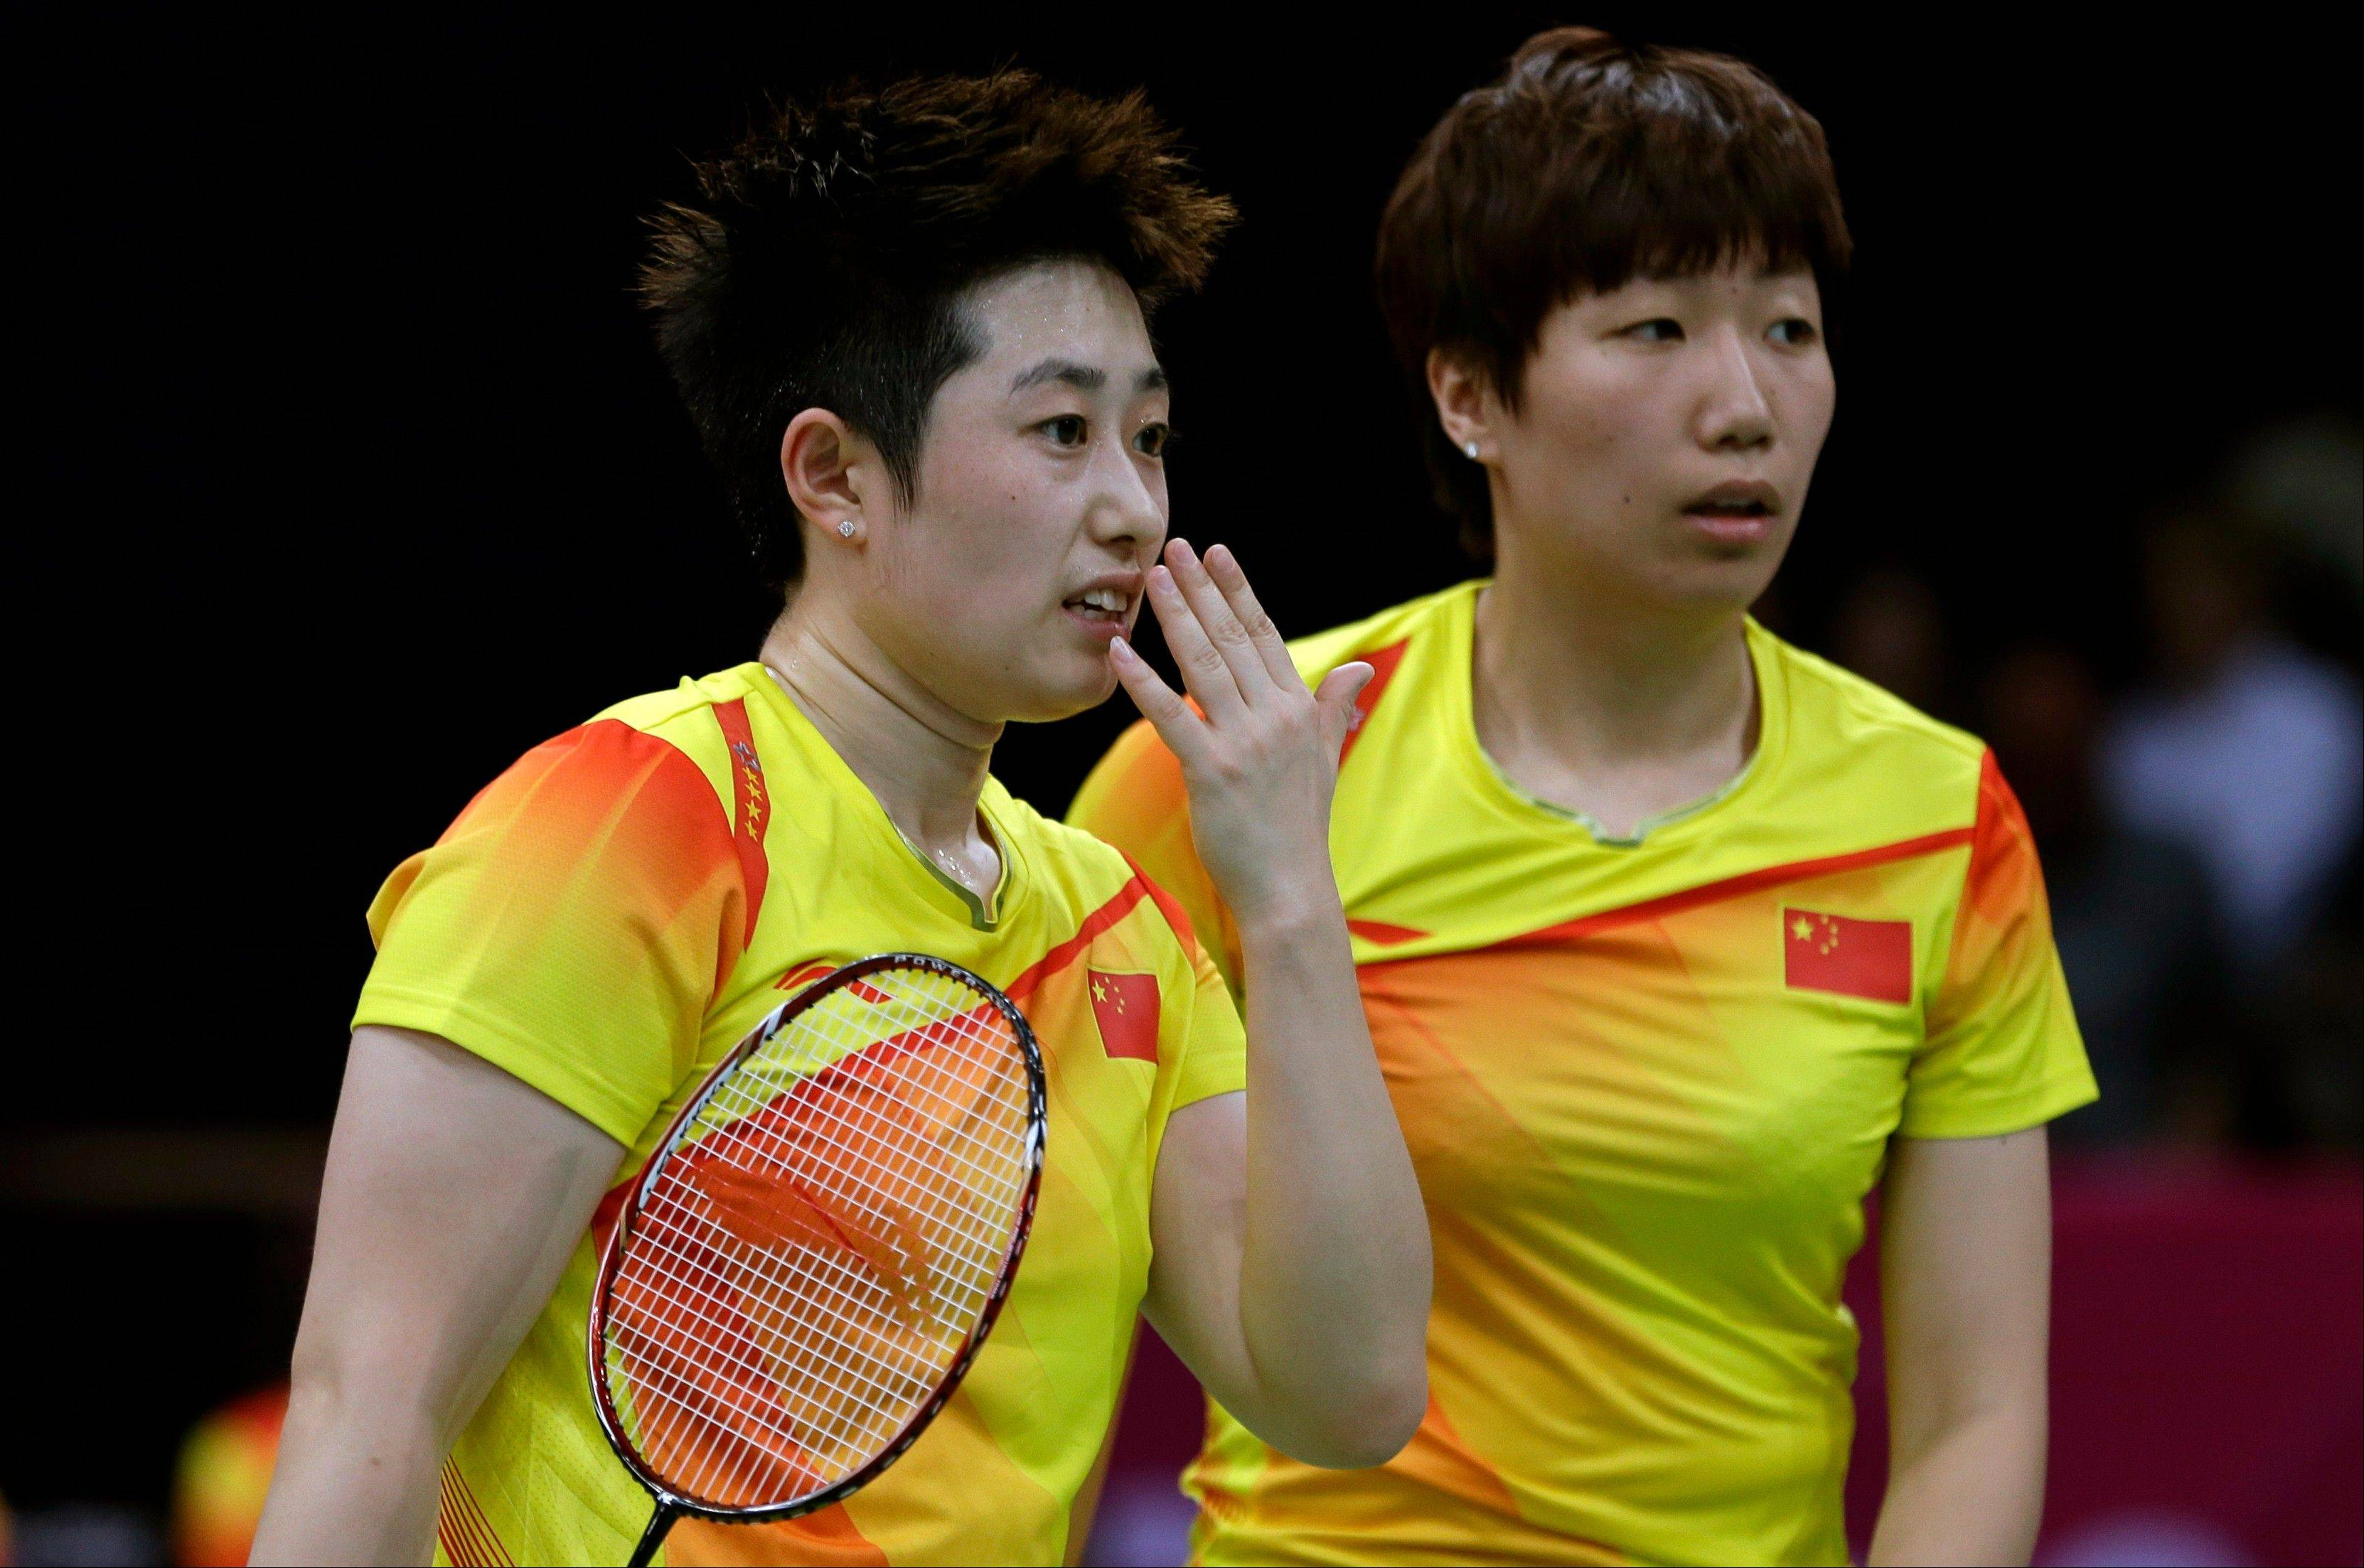 Eight female badminton doubles players, including China's Yu Yang, left, and Wang Xiaoli, were disqualified Wednesday from the London Olympics after trying to lose matches to receive a more favorable place in the tournament.